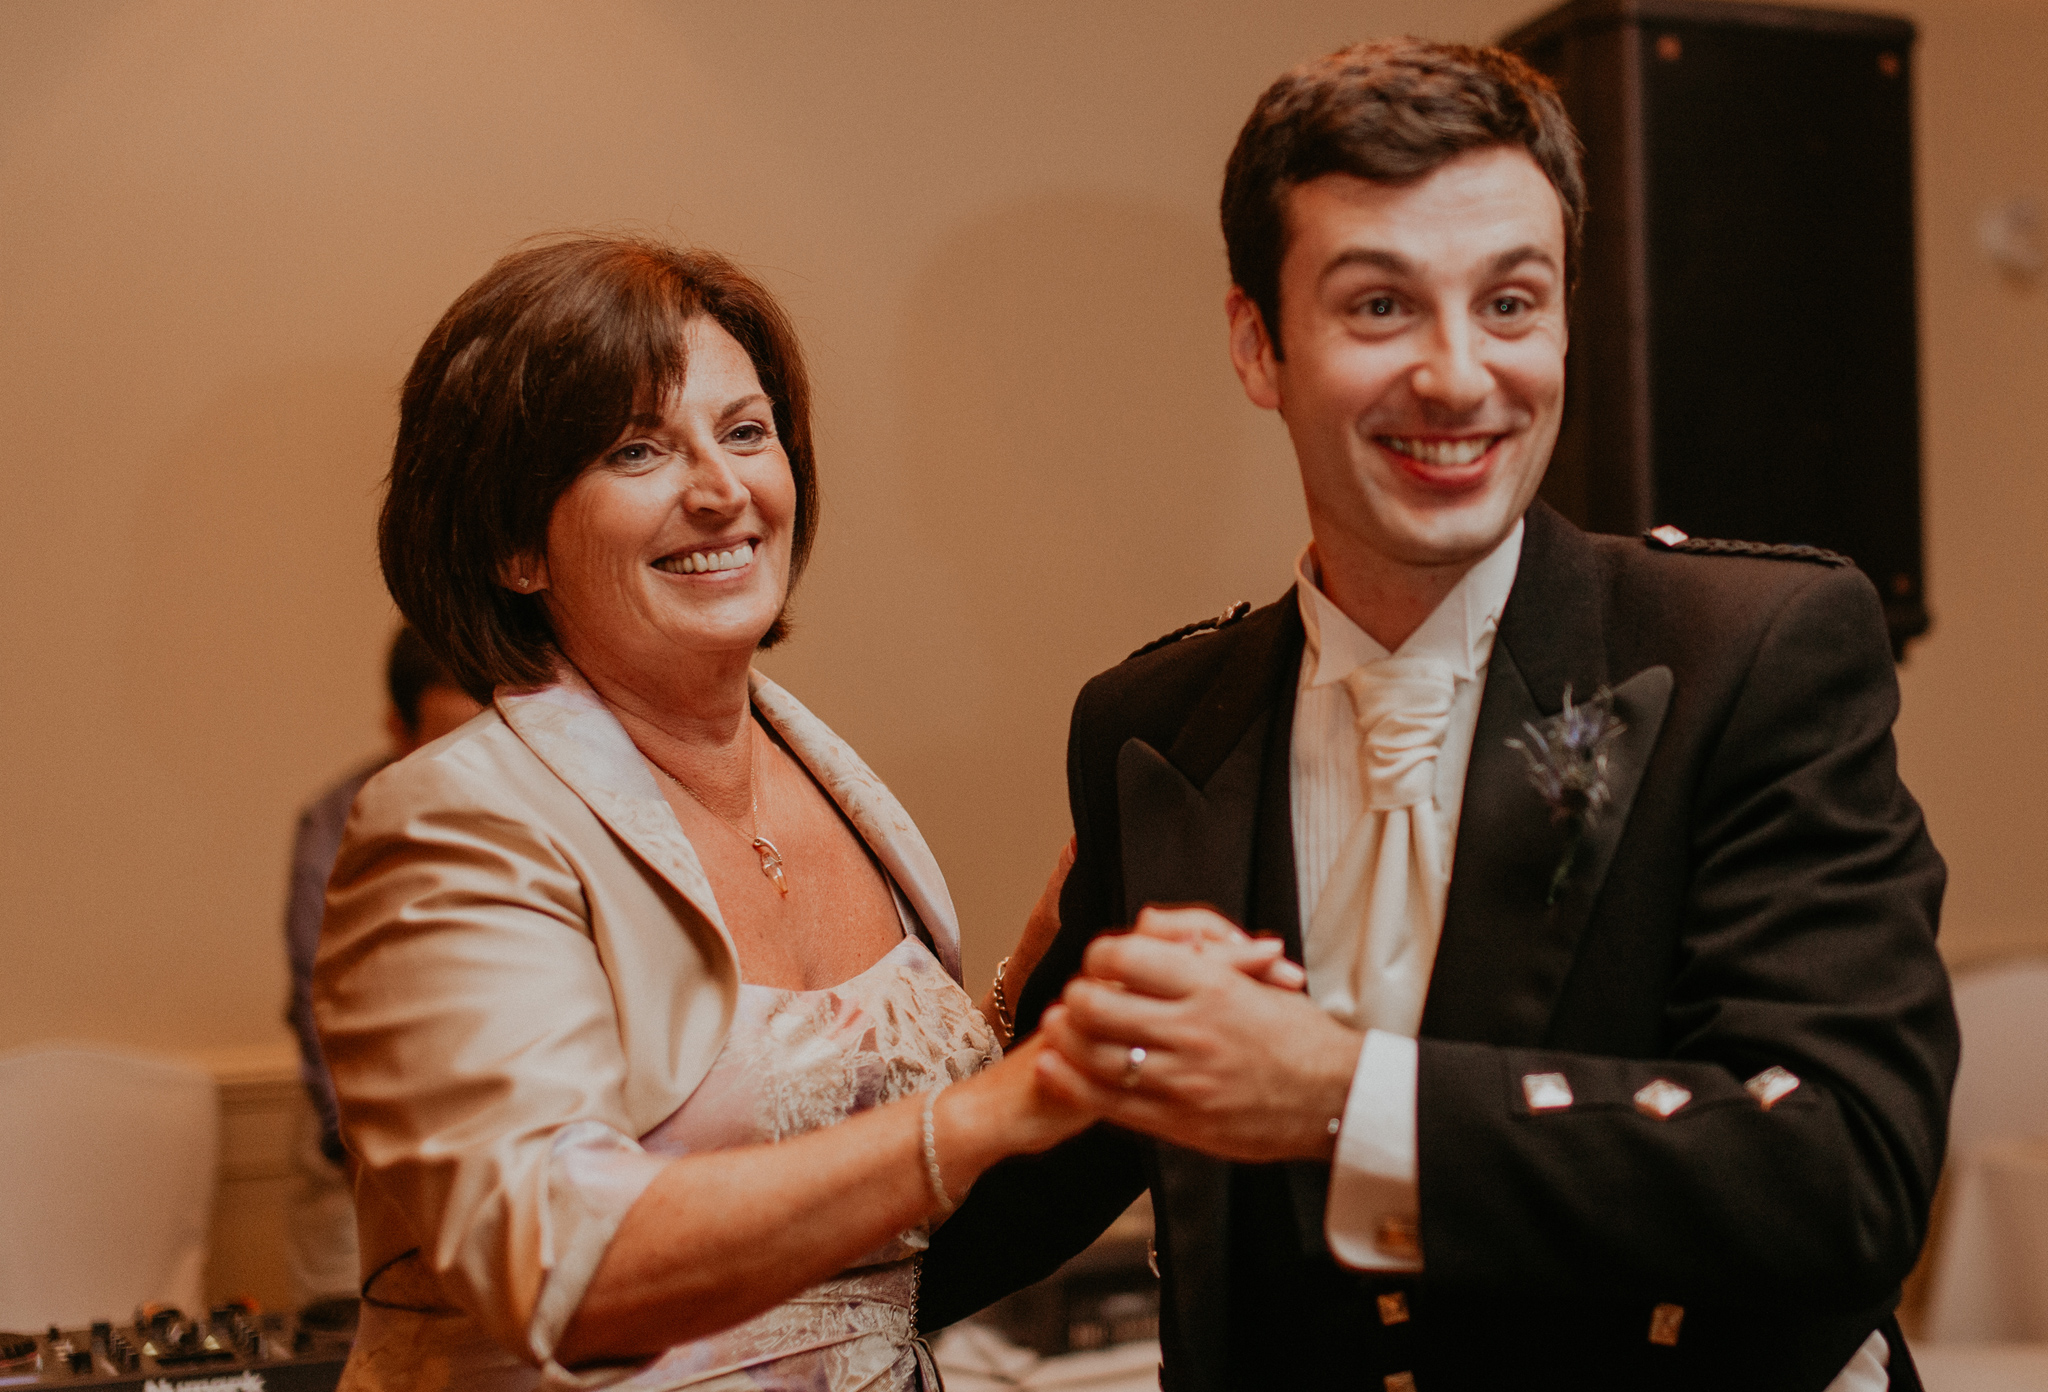 Groom dances with mom at wedding reception